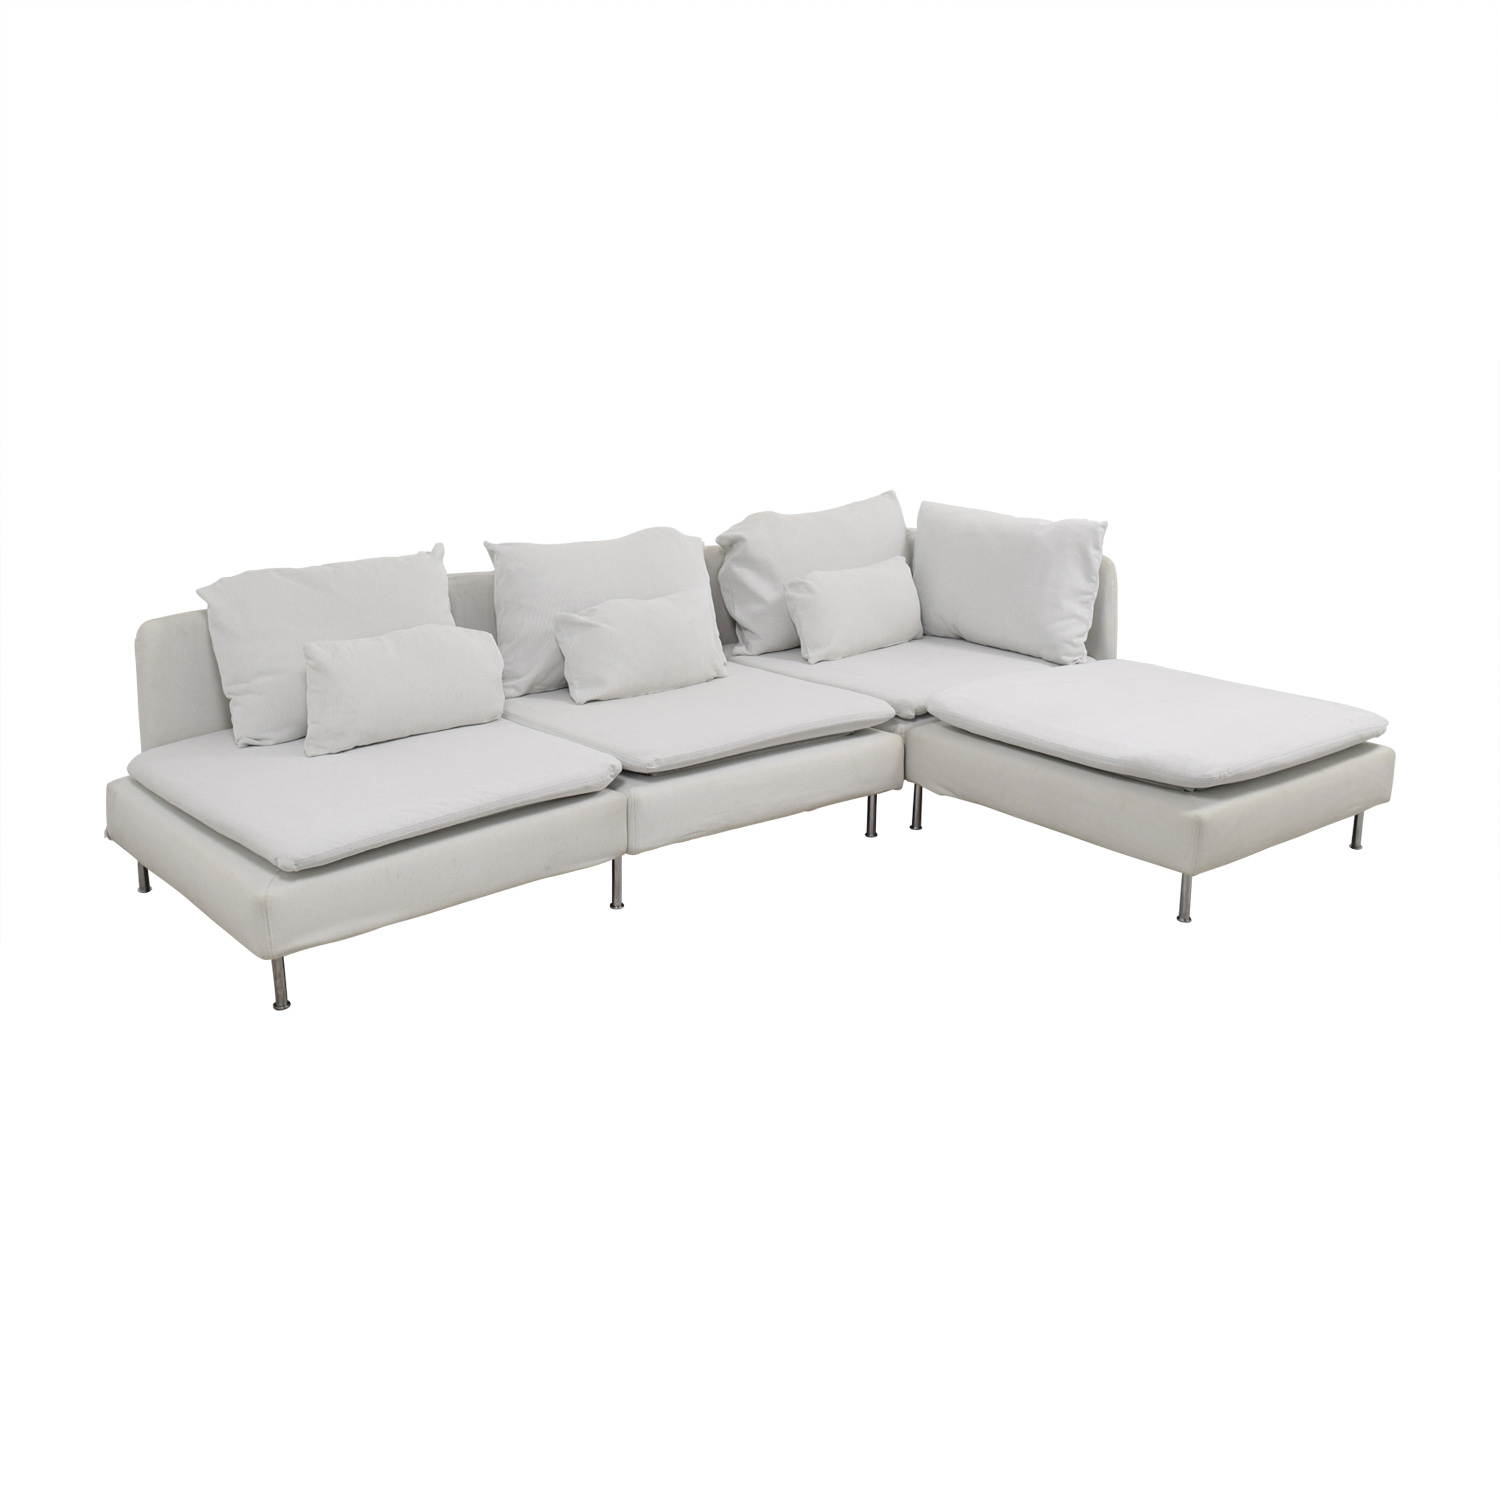 sectional ashwell rachel products at chic simple white shabby silo couture